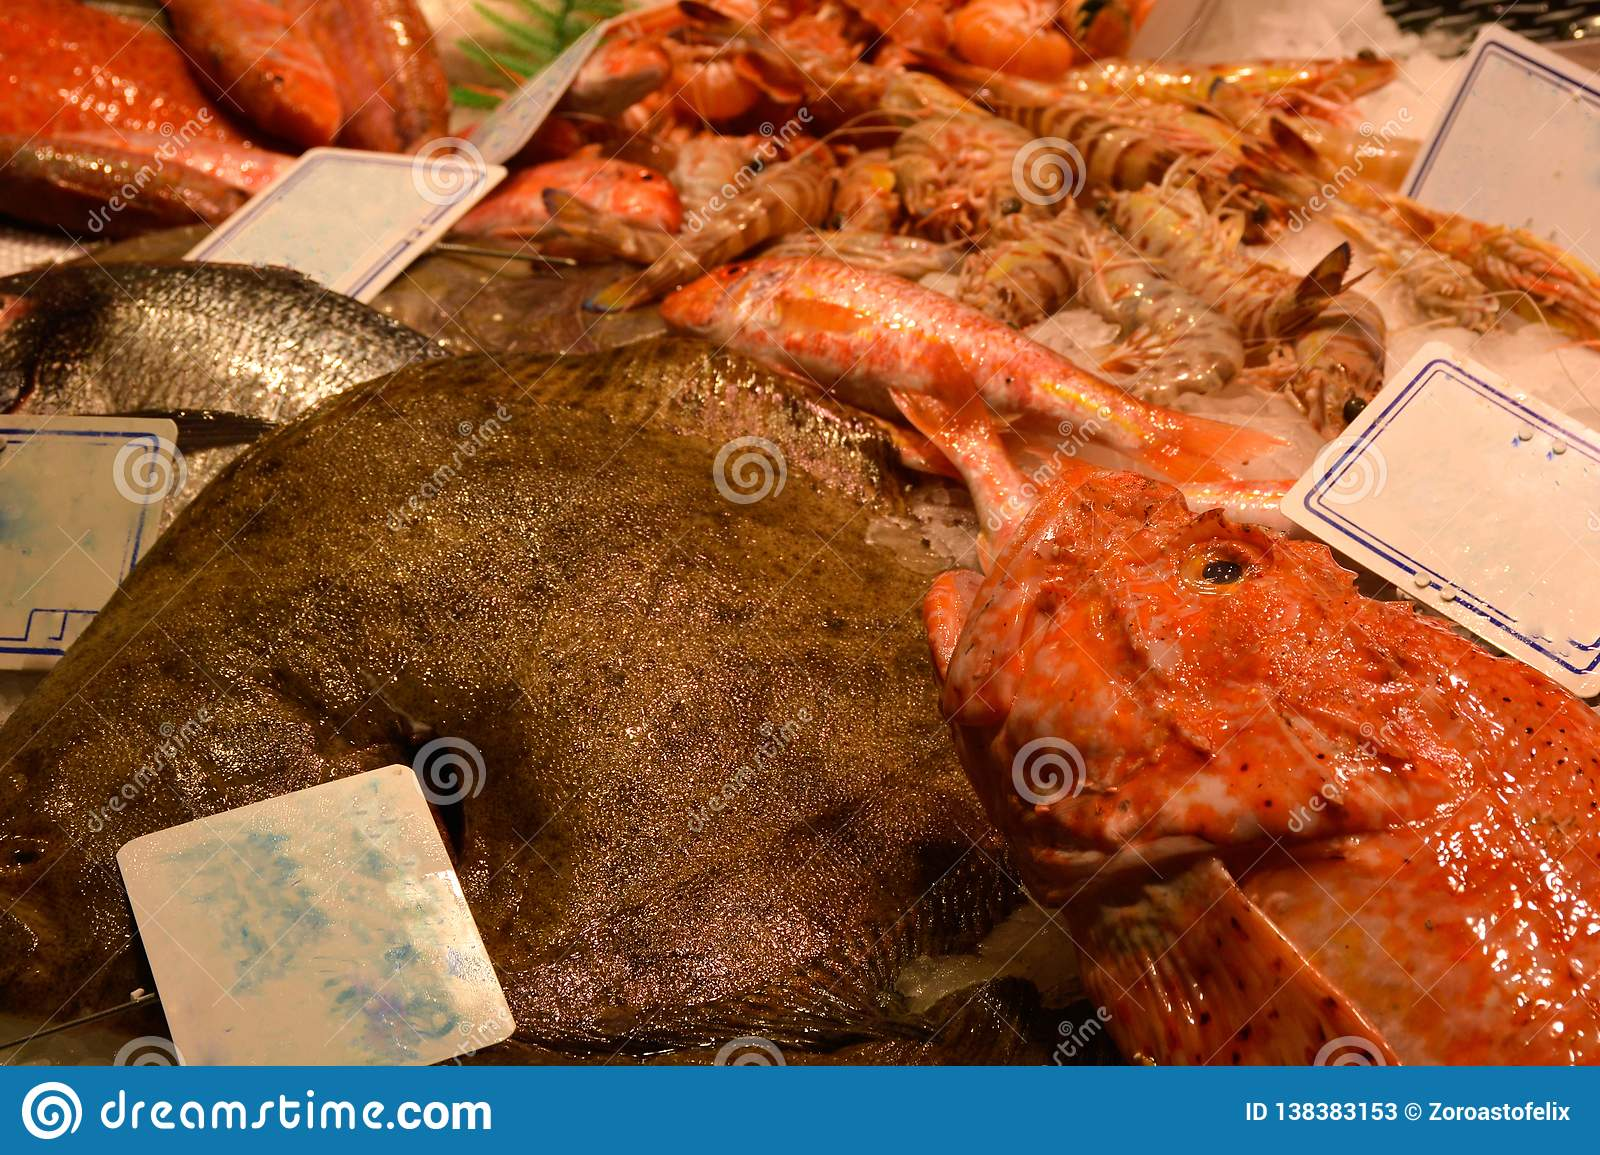 View of fish stall in food market, Barcelona